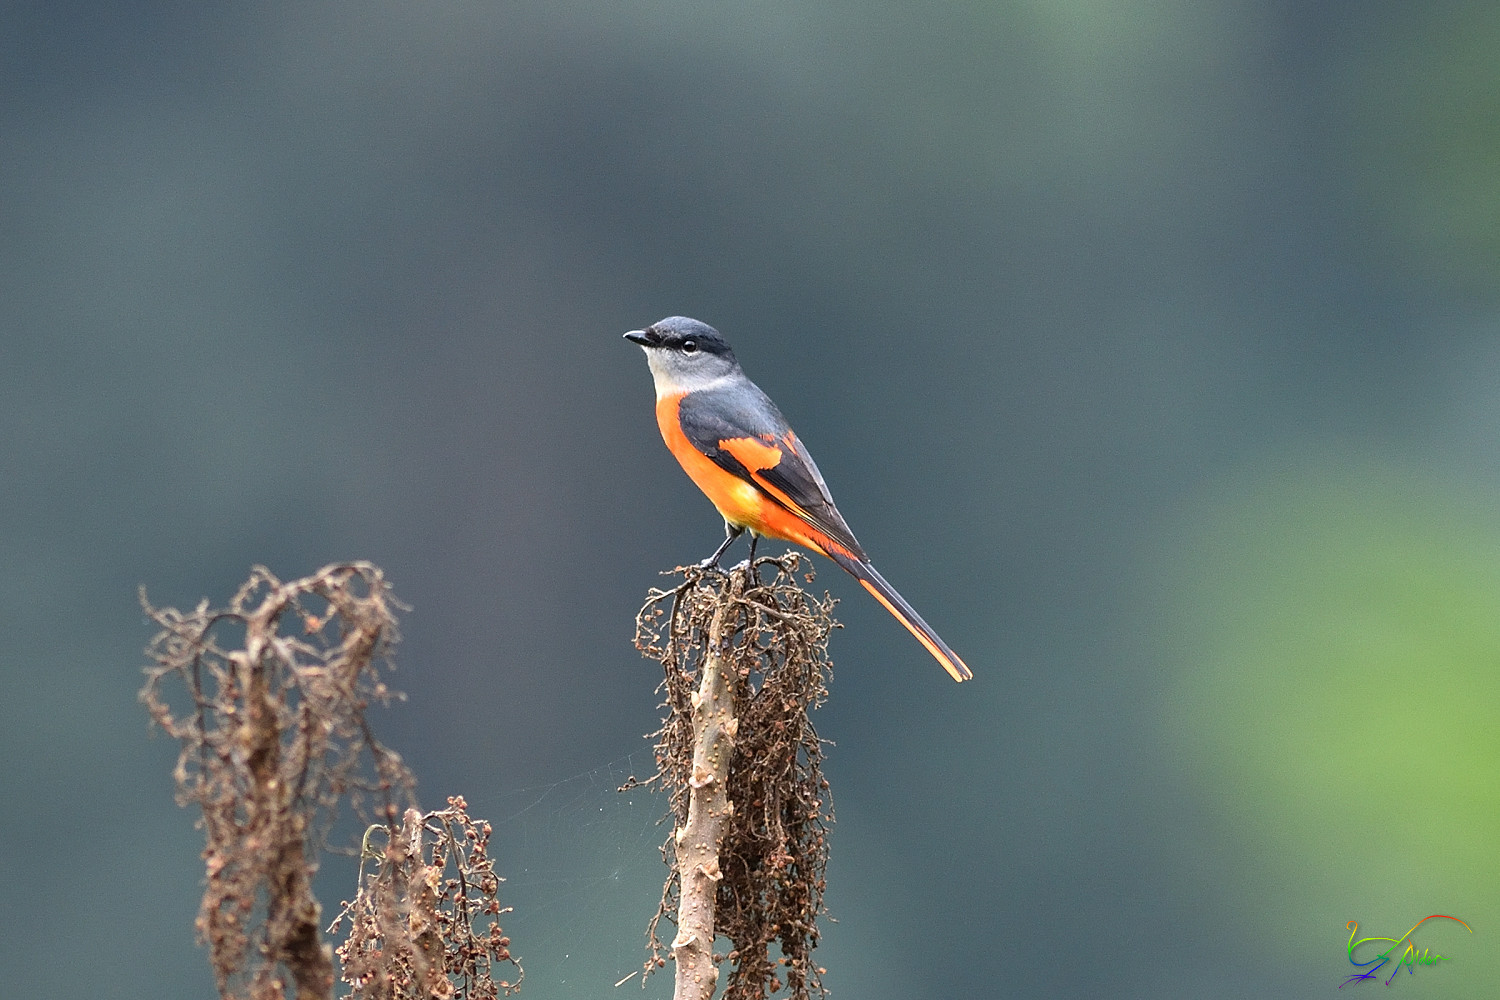 Grey-chinned_Minivett_7985